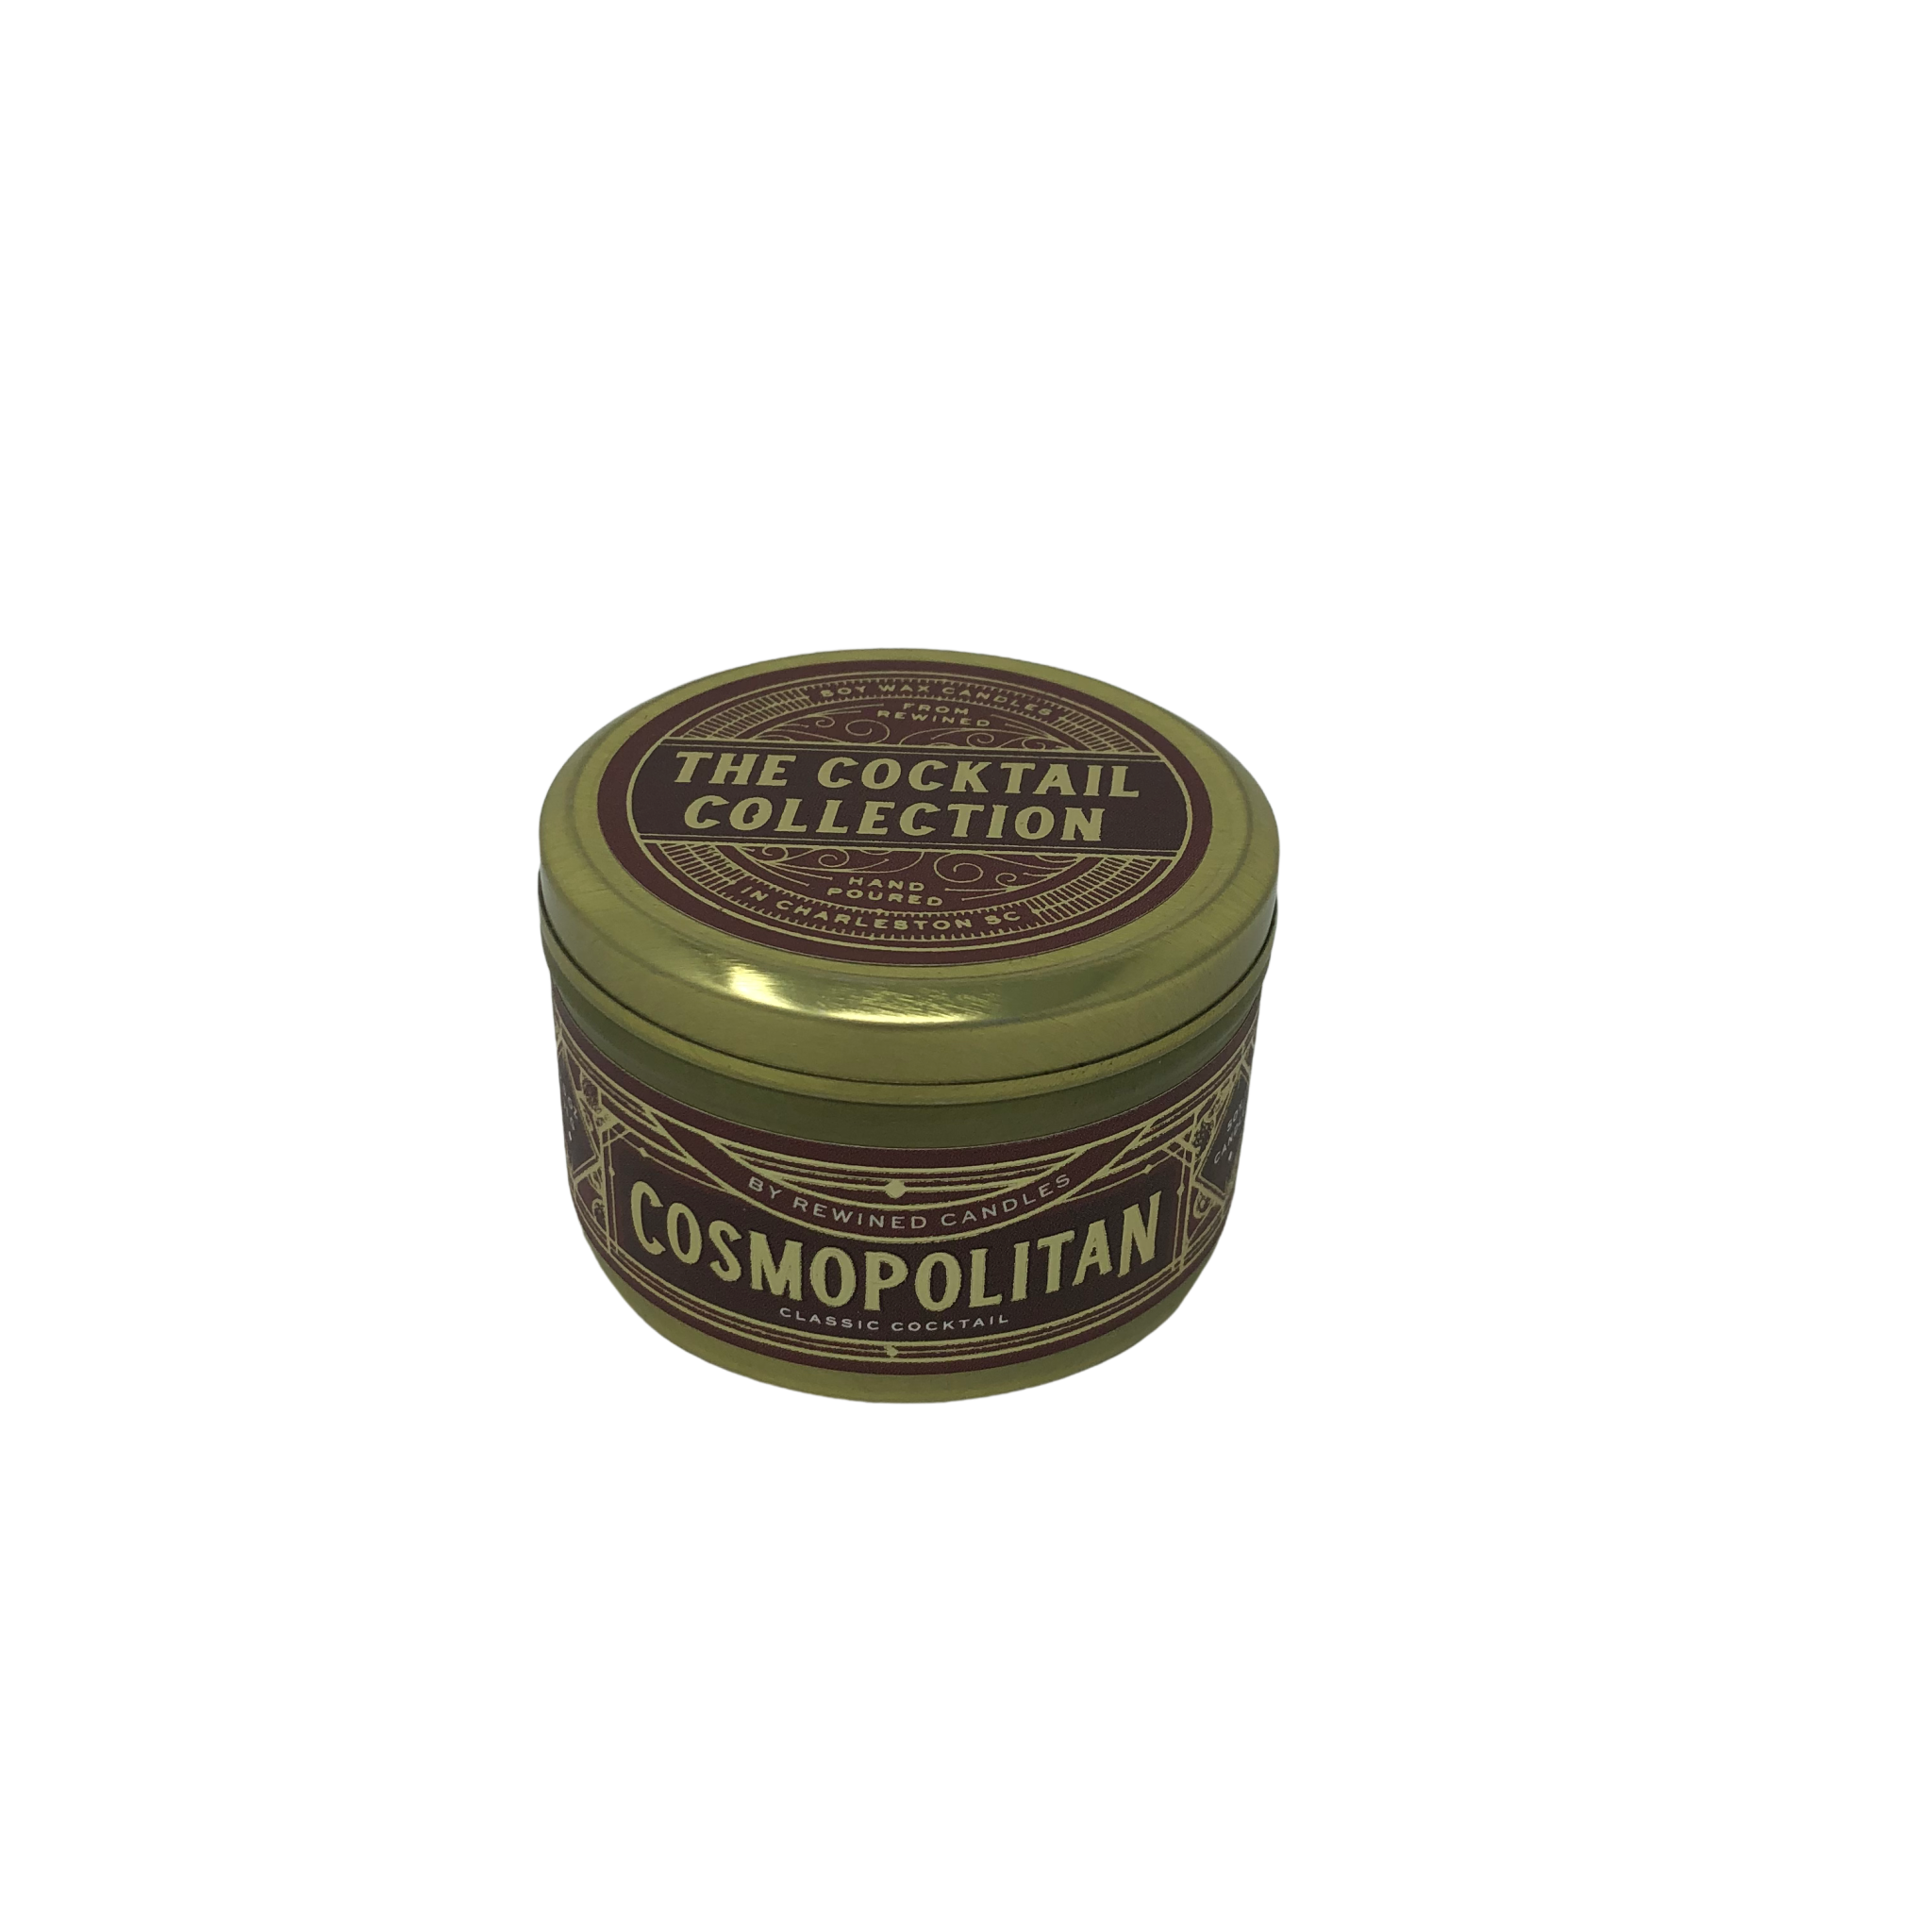 Rewined Cosmopolitan Travel Tin Candle